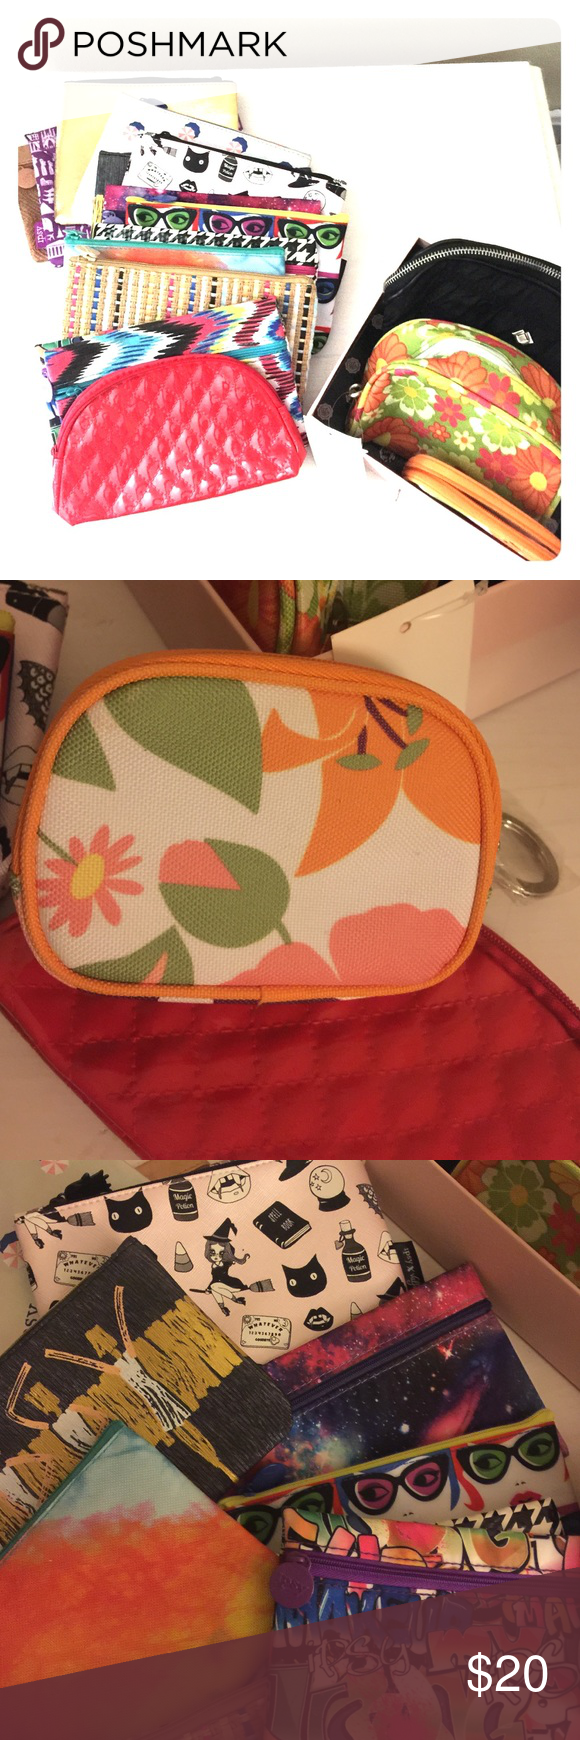 """Mixed lot of cosmetic cases/clutches All new! Never been used pouches, clutches, cosmetic cases. 1 lager sized black """"skinmedica"""" bag app. 7x5"""" 1 med sz flowered pouch with small pockets inside. 1 small """"Clinique"""" bag with key chain attached. The rest vary in size from about 6.5"""" to 8"""" long. Most zipper close some snap. Can be used for so many things including a cute clutch! There are 17 bags in all 14 of them are from """"Ipsy"""". Bags Cosmetic Bags & Cases"""